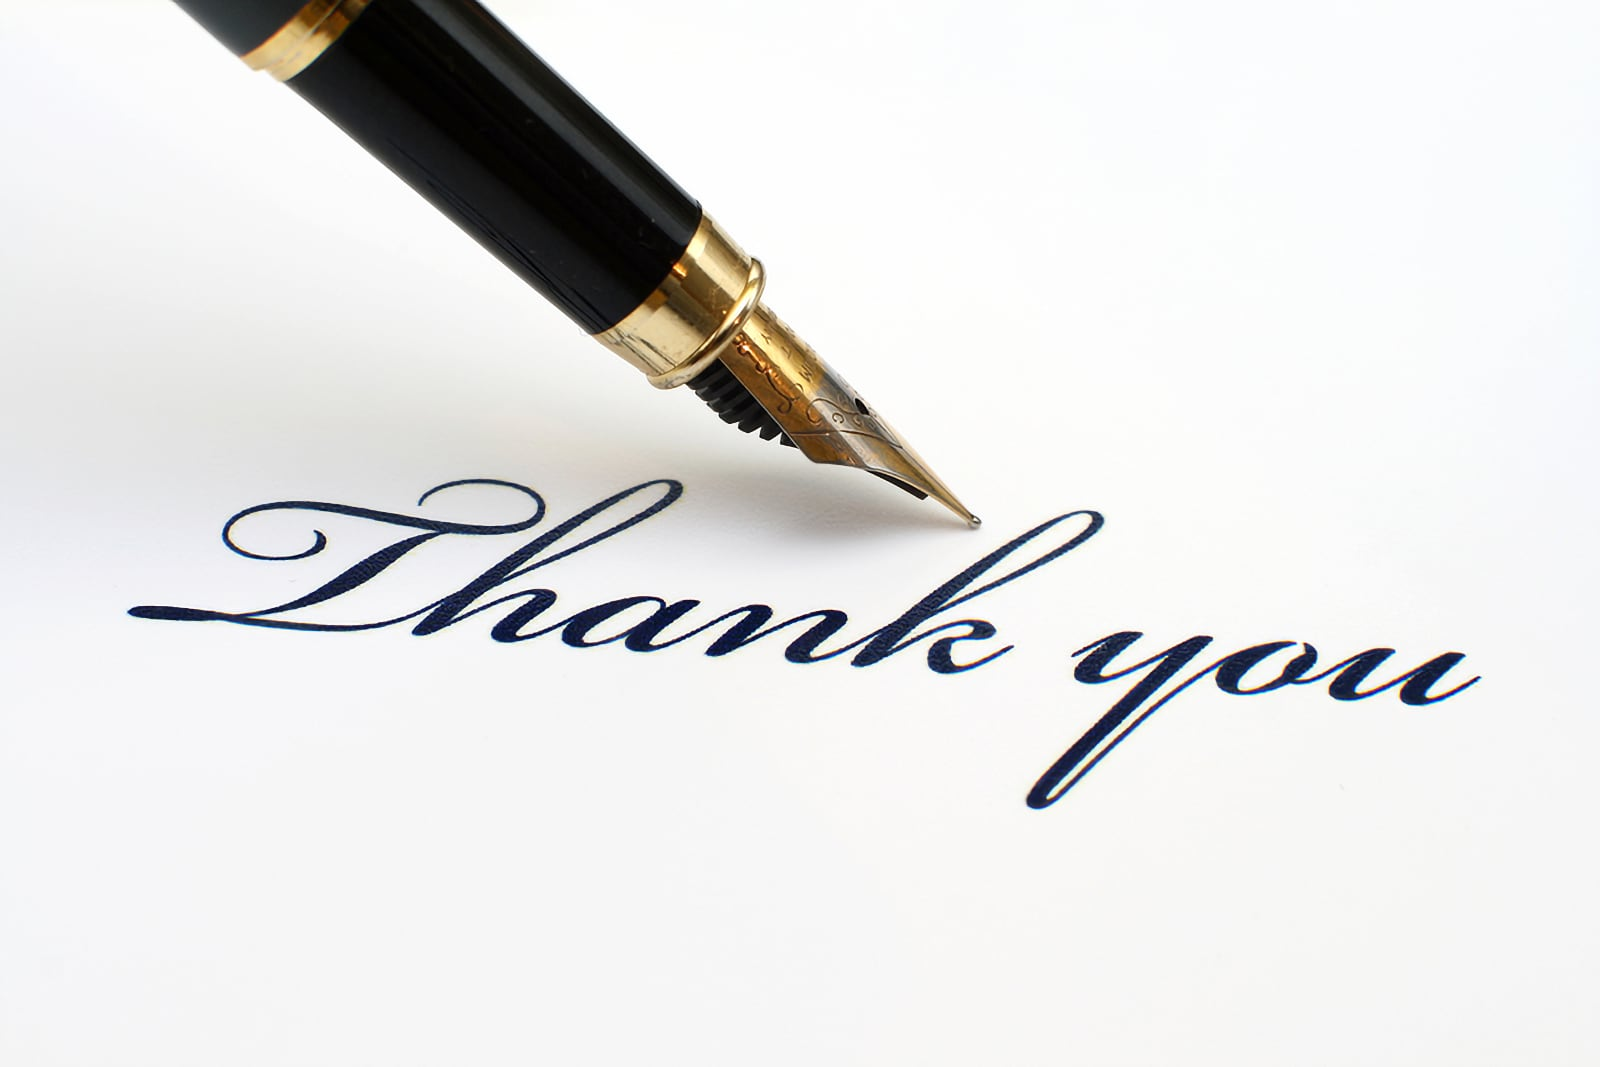 Close-up photo of beautiful fountain pen pointing at the words Thank you, writen in handwriting script on paper